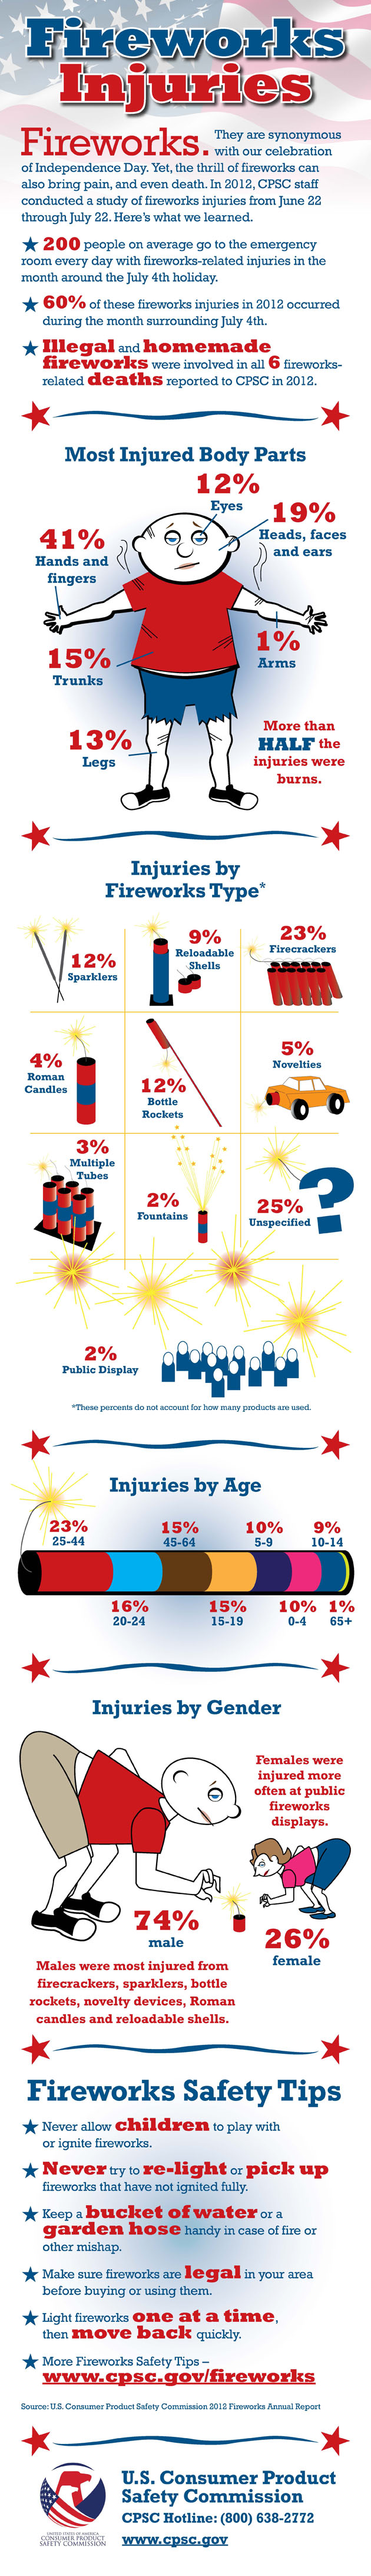 Fireworks-Infographic-2013